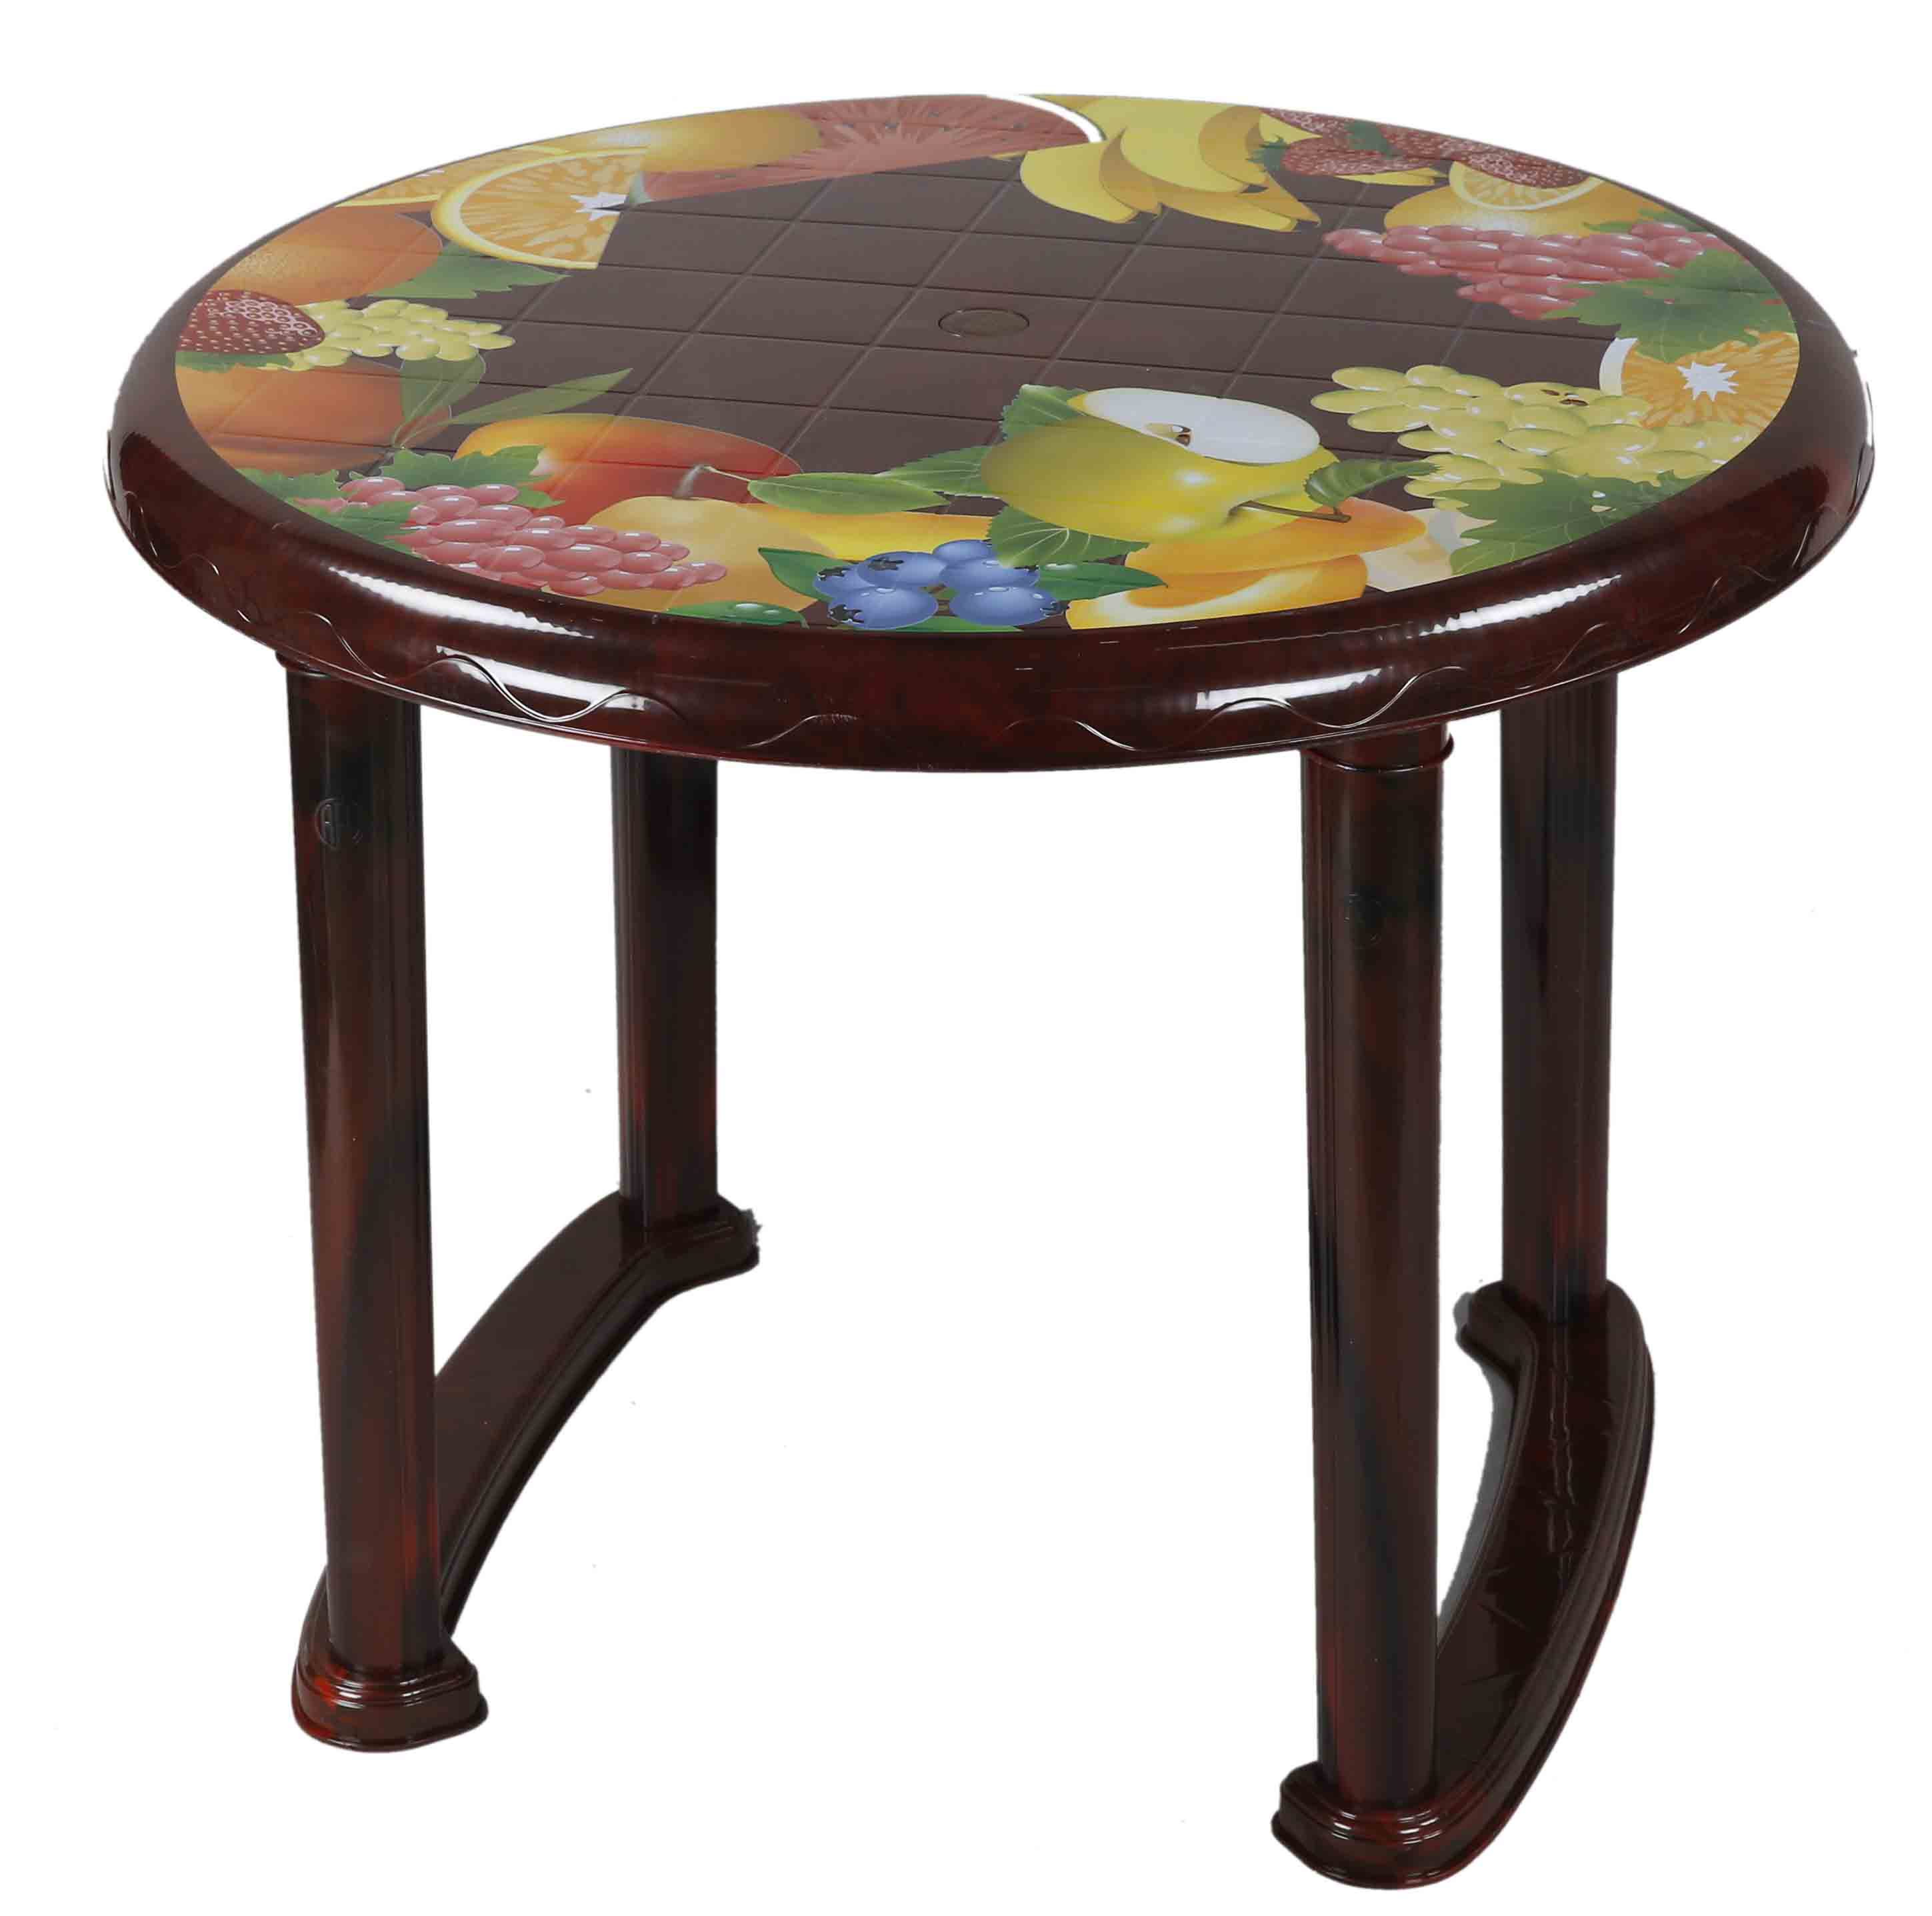 Dining Table 4 Seat Ro P/L Print Mixed Fruit-RW